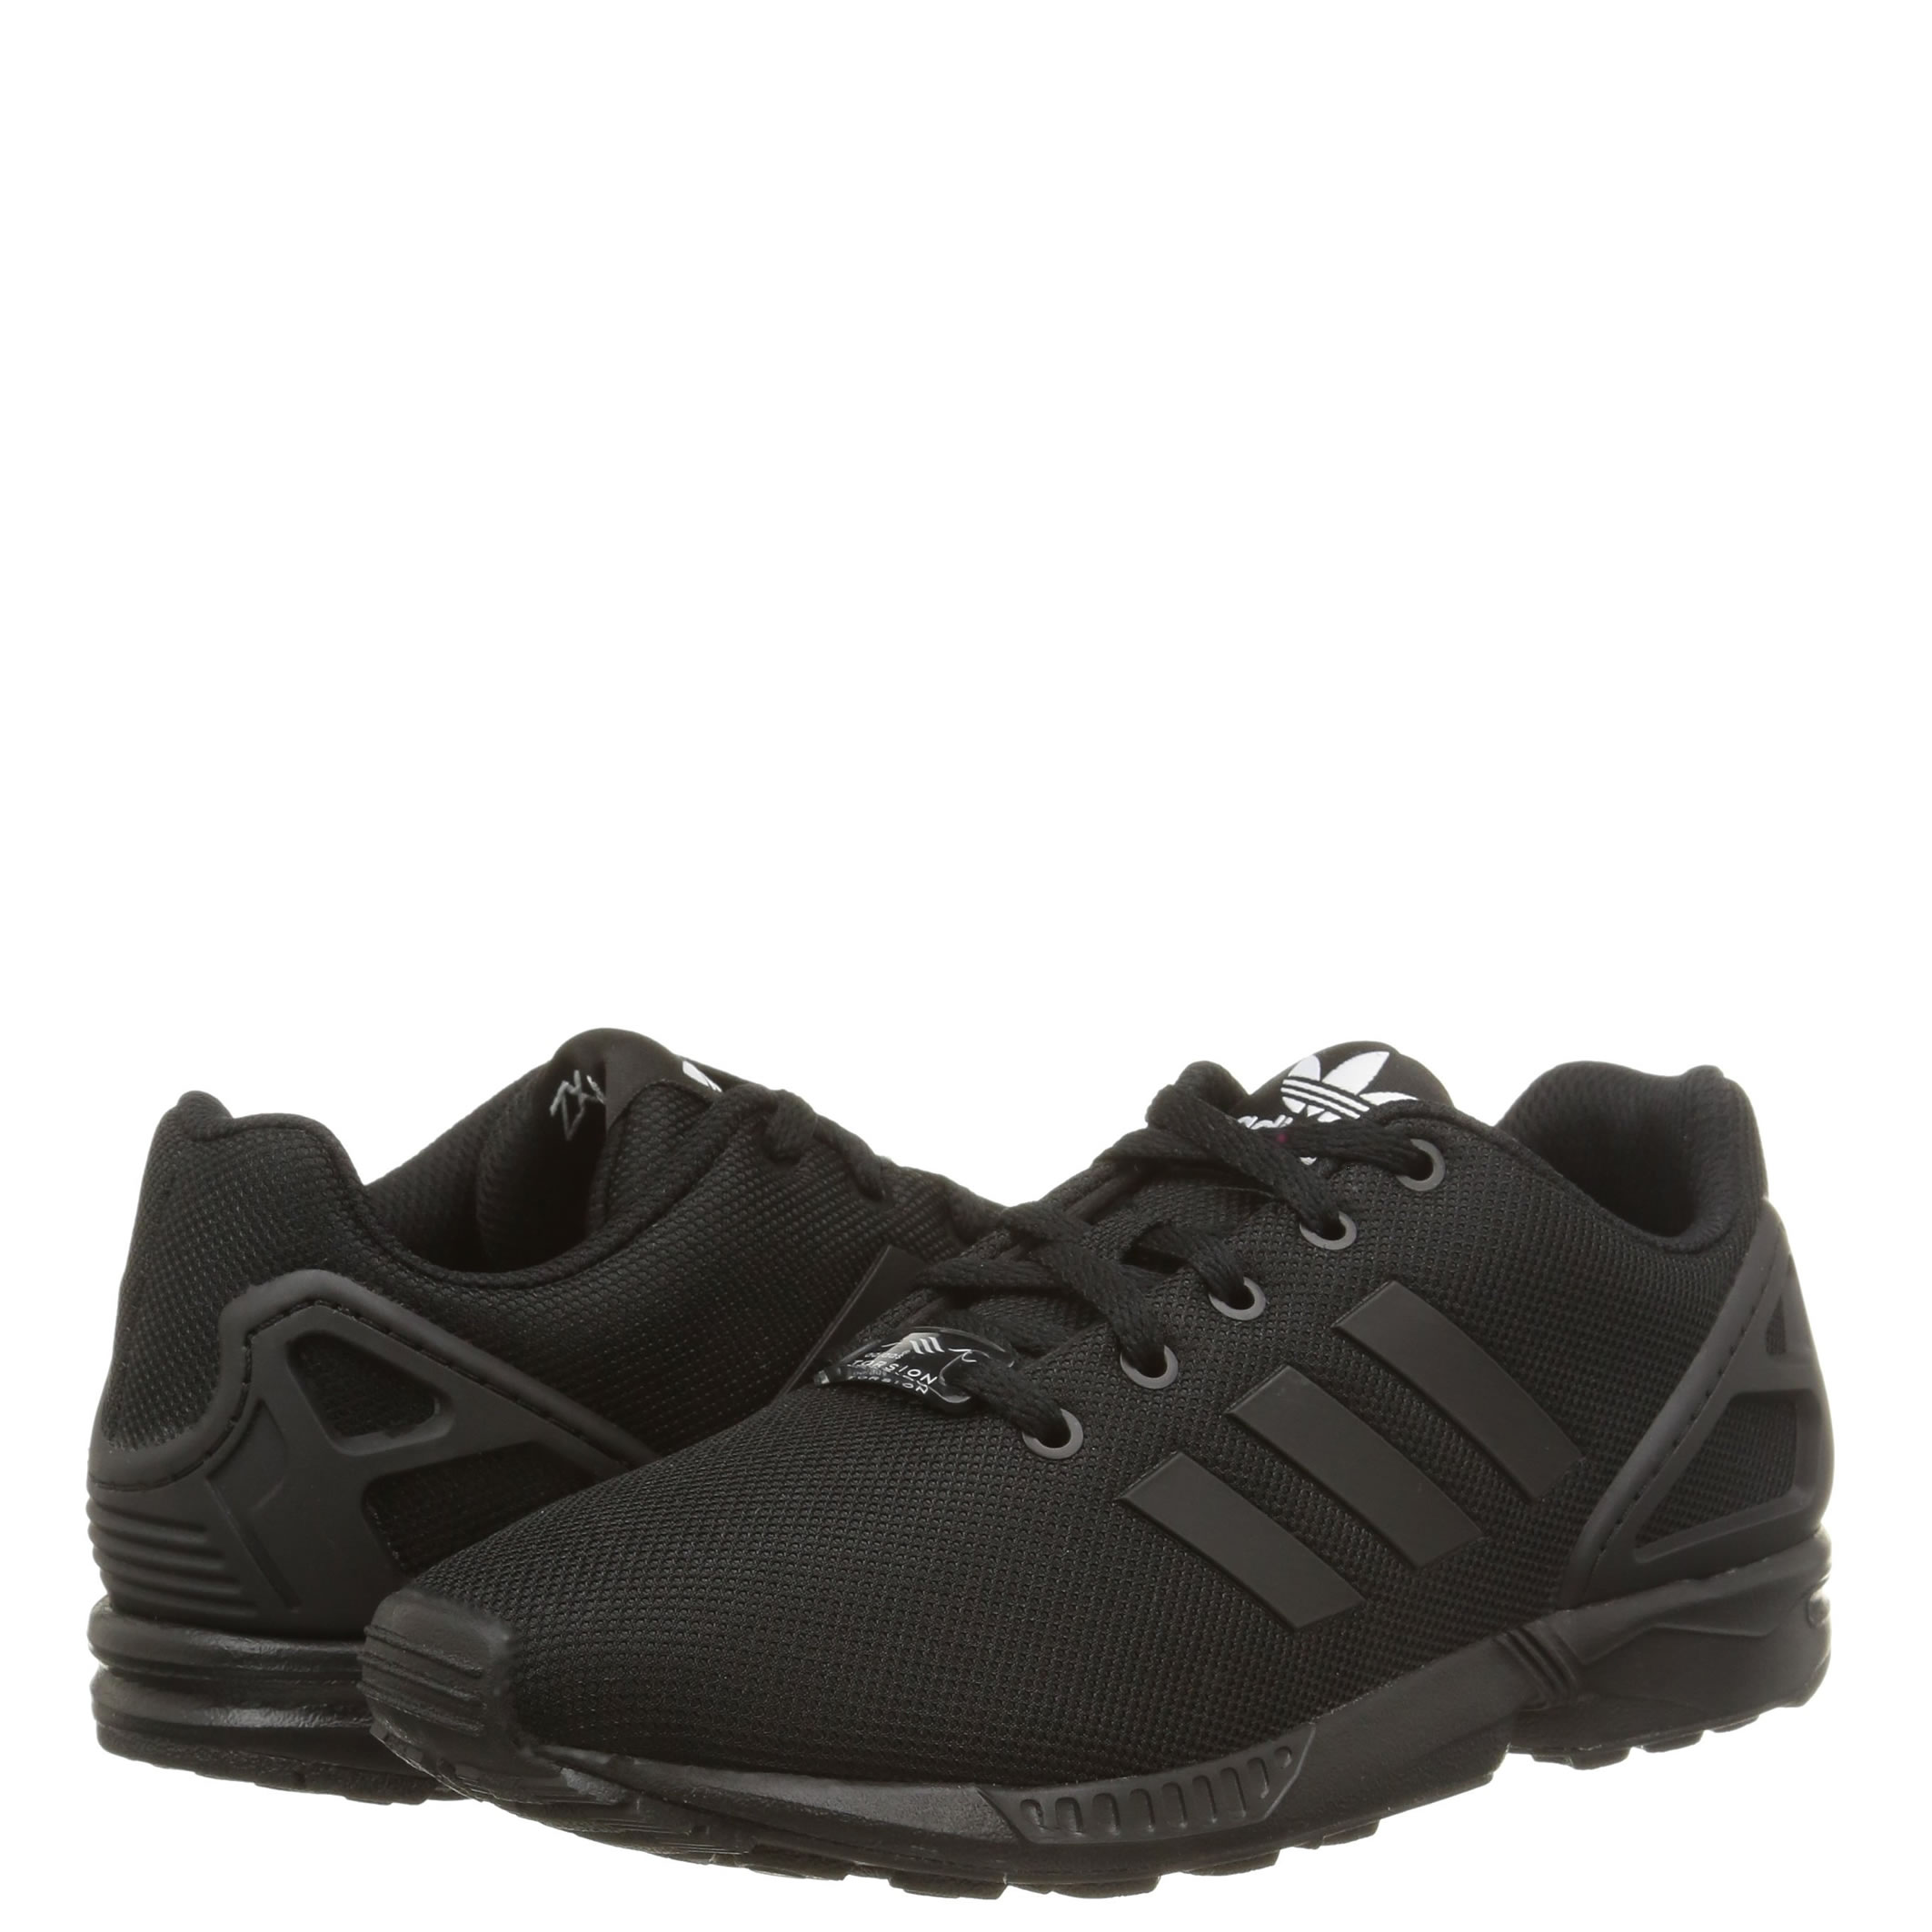 008f55ae0cc6 Adidas ZX Flux Low-Top Trainers in Black Black Black